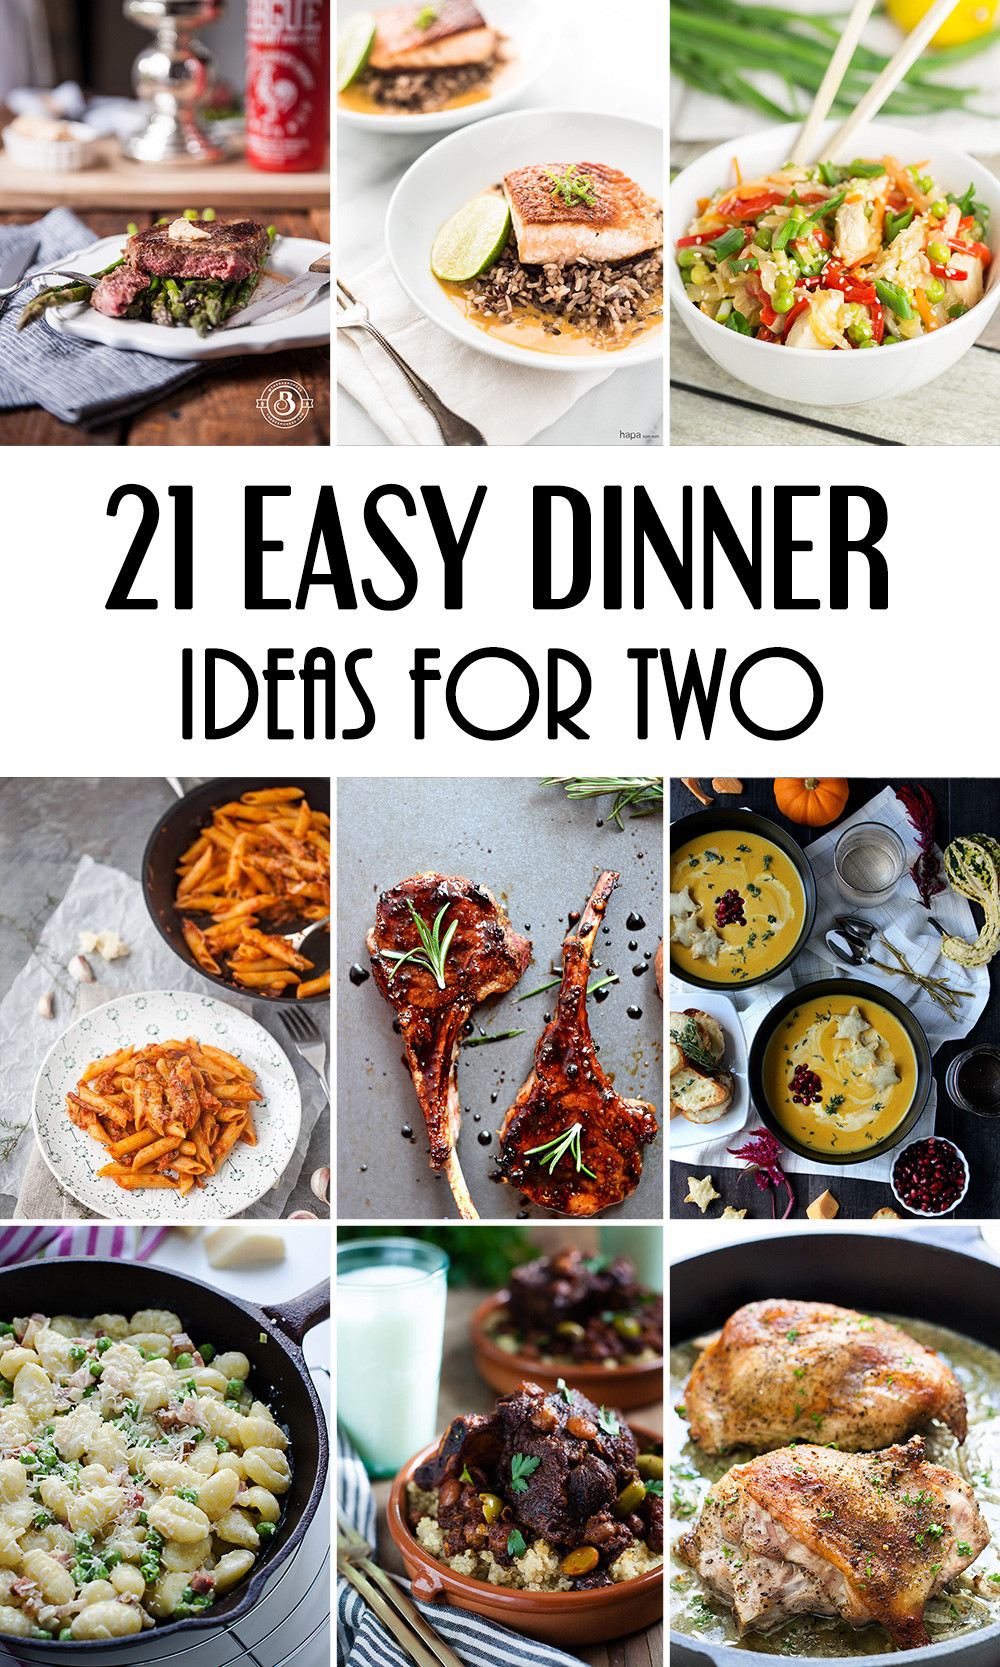 Easy Healthy Dinner Recipes For Two  21 Easy Dinner Ideas For Two That Will Impress Your Loved e